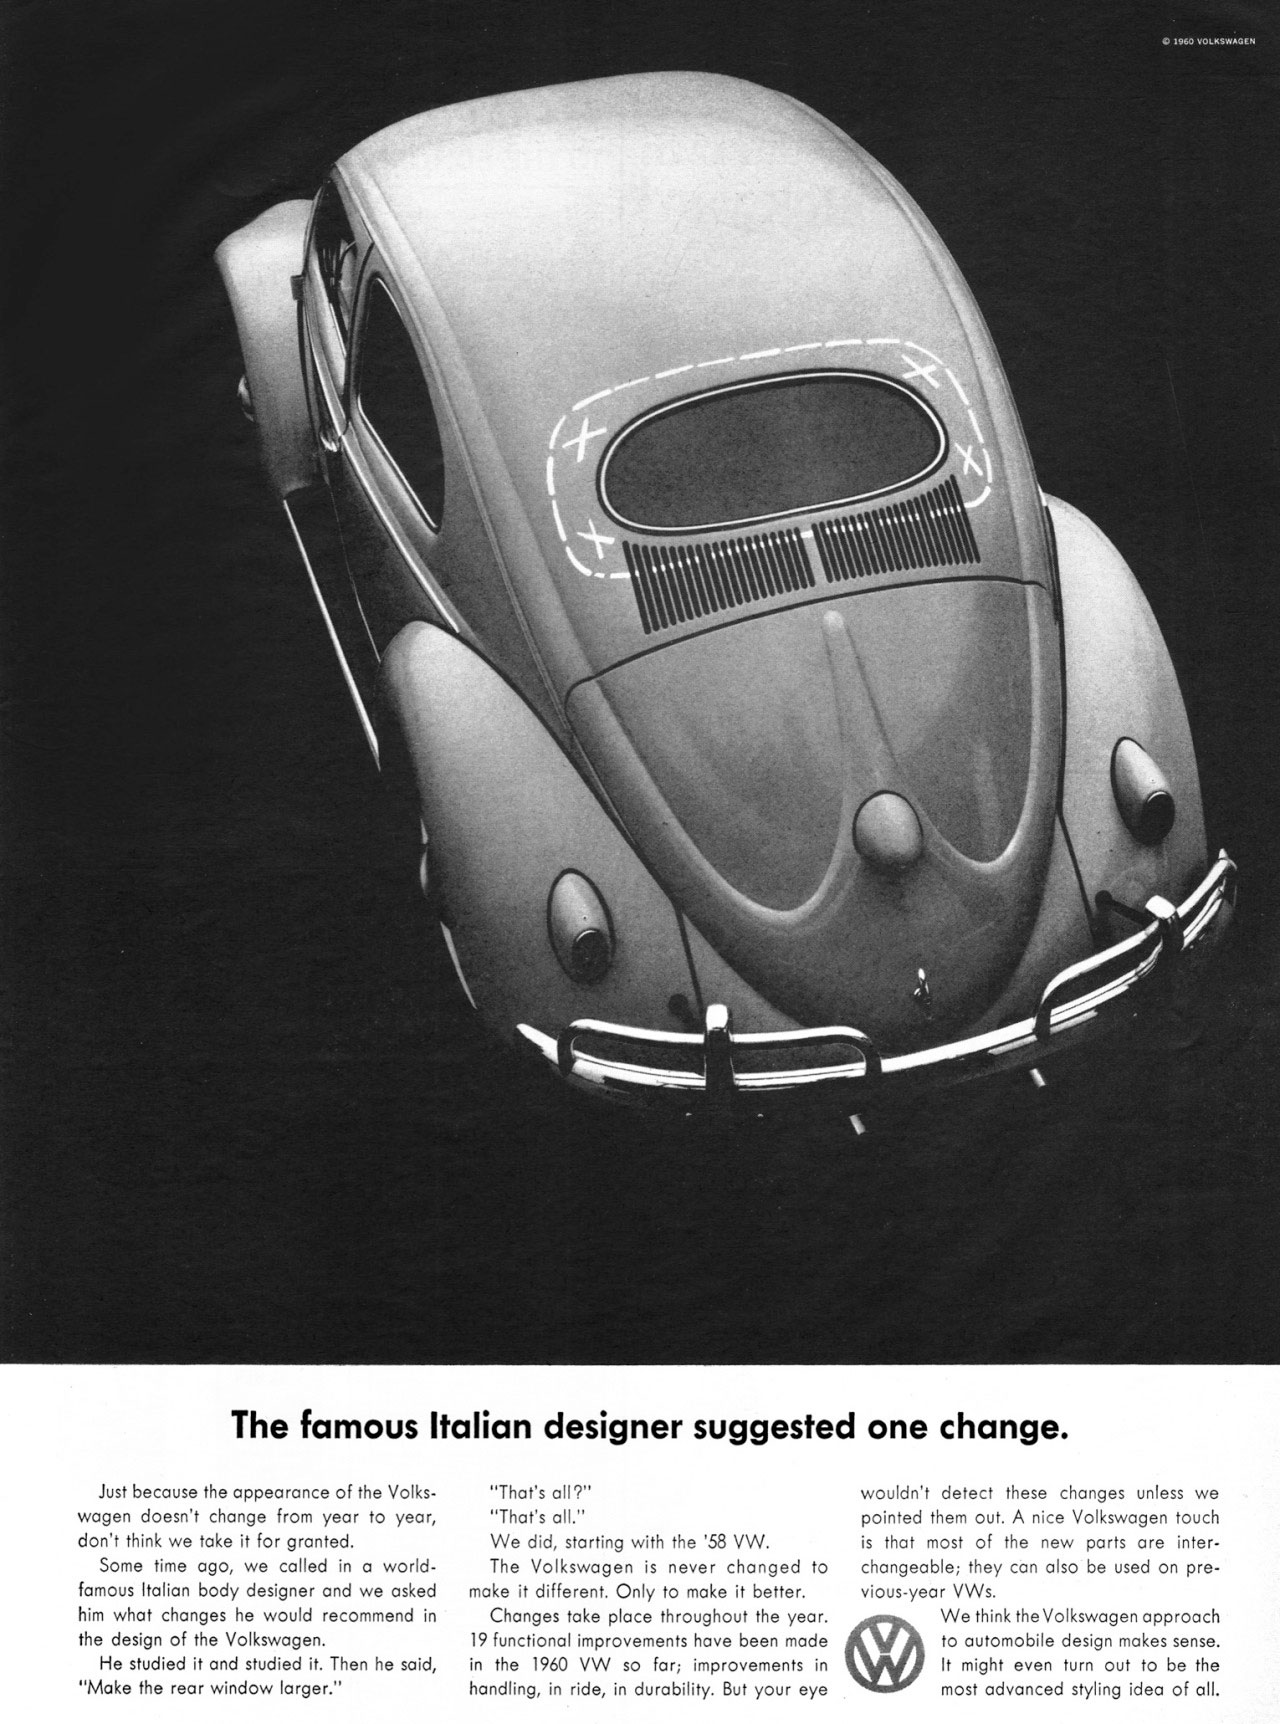 The famous Italian designer suggested one change to the Volkswagen Beetle. Just because the appearance of the Volks-wagen doesn't change from year to year, don't think we take it for granted. Some time ago, we called in a world-famous Italian body designer and we asked him what changes he would recommend in the design of the Volkswagen. He studied it and studied it. Then he said, ''Make the rear window larger.''  ''That's all?'' ''That's all.'' We did, starting with the '58 VW. The Volkswagen is never changed to make it different. Only to make it better. Changes take place throughout the year. 19 functional improvements have been made in the 1960 VW so far; improvements in handling, in ride, in durability. But your eye  wouldn't detect these changes unless we pointed them out. A nice Volkswagen touch is that most of the new parts are inter-changeable; they can also be used on pre-vious-year VWs. We think the Volkswagen approach to automobile design makes sense. It might even turn out to be the most advanced styling idea of all.